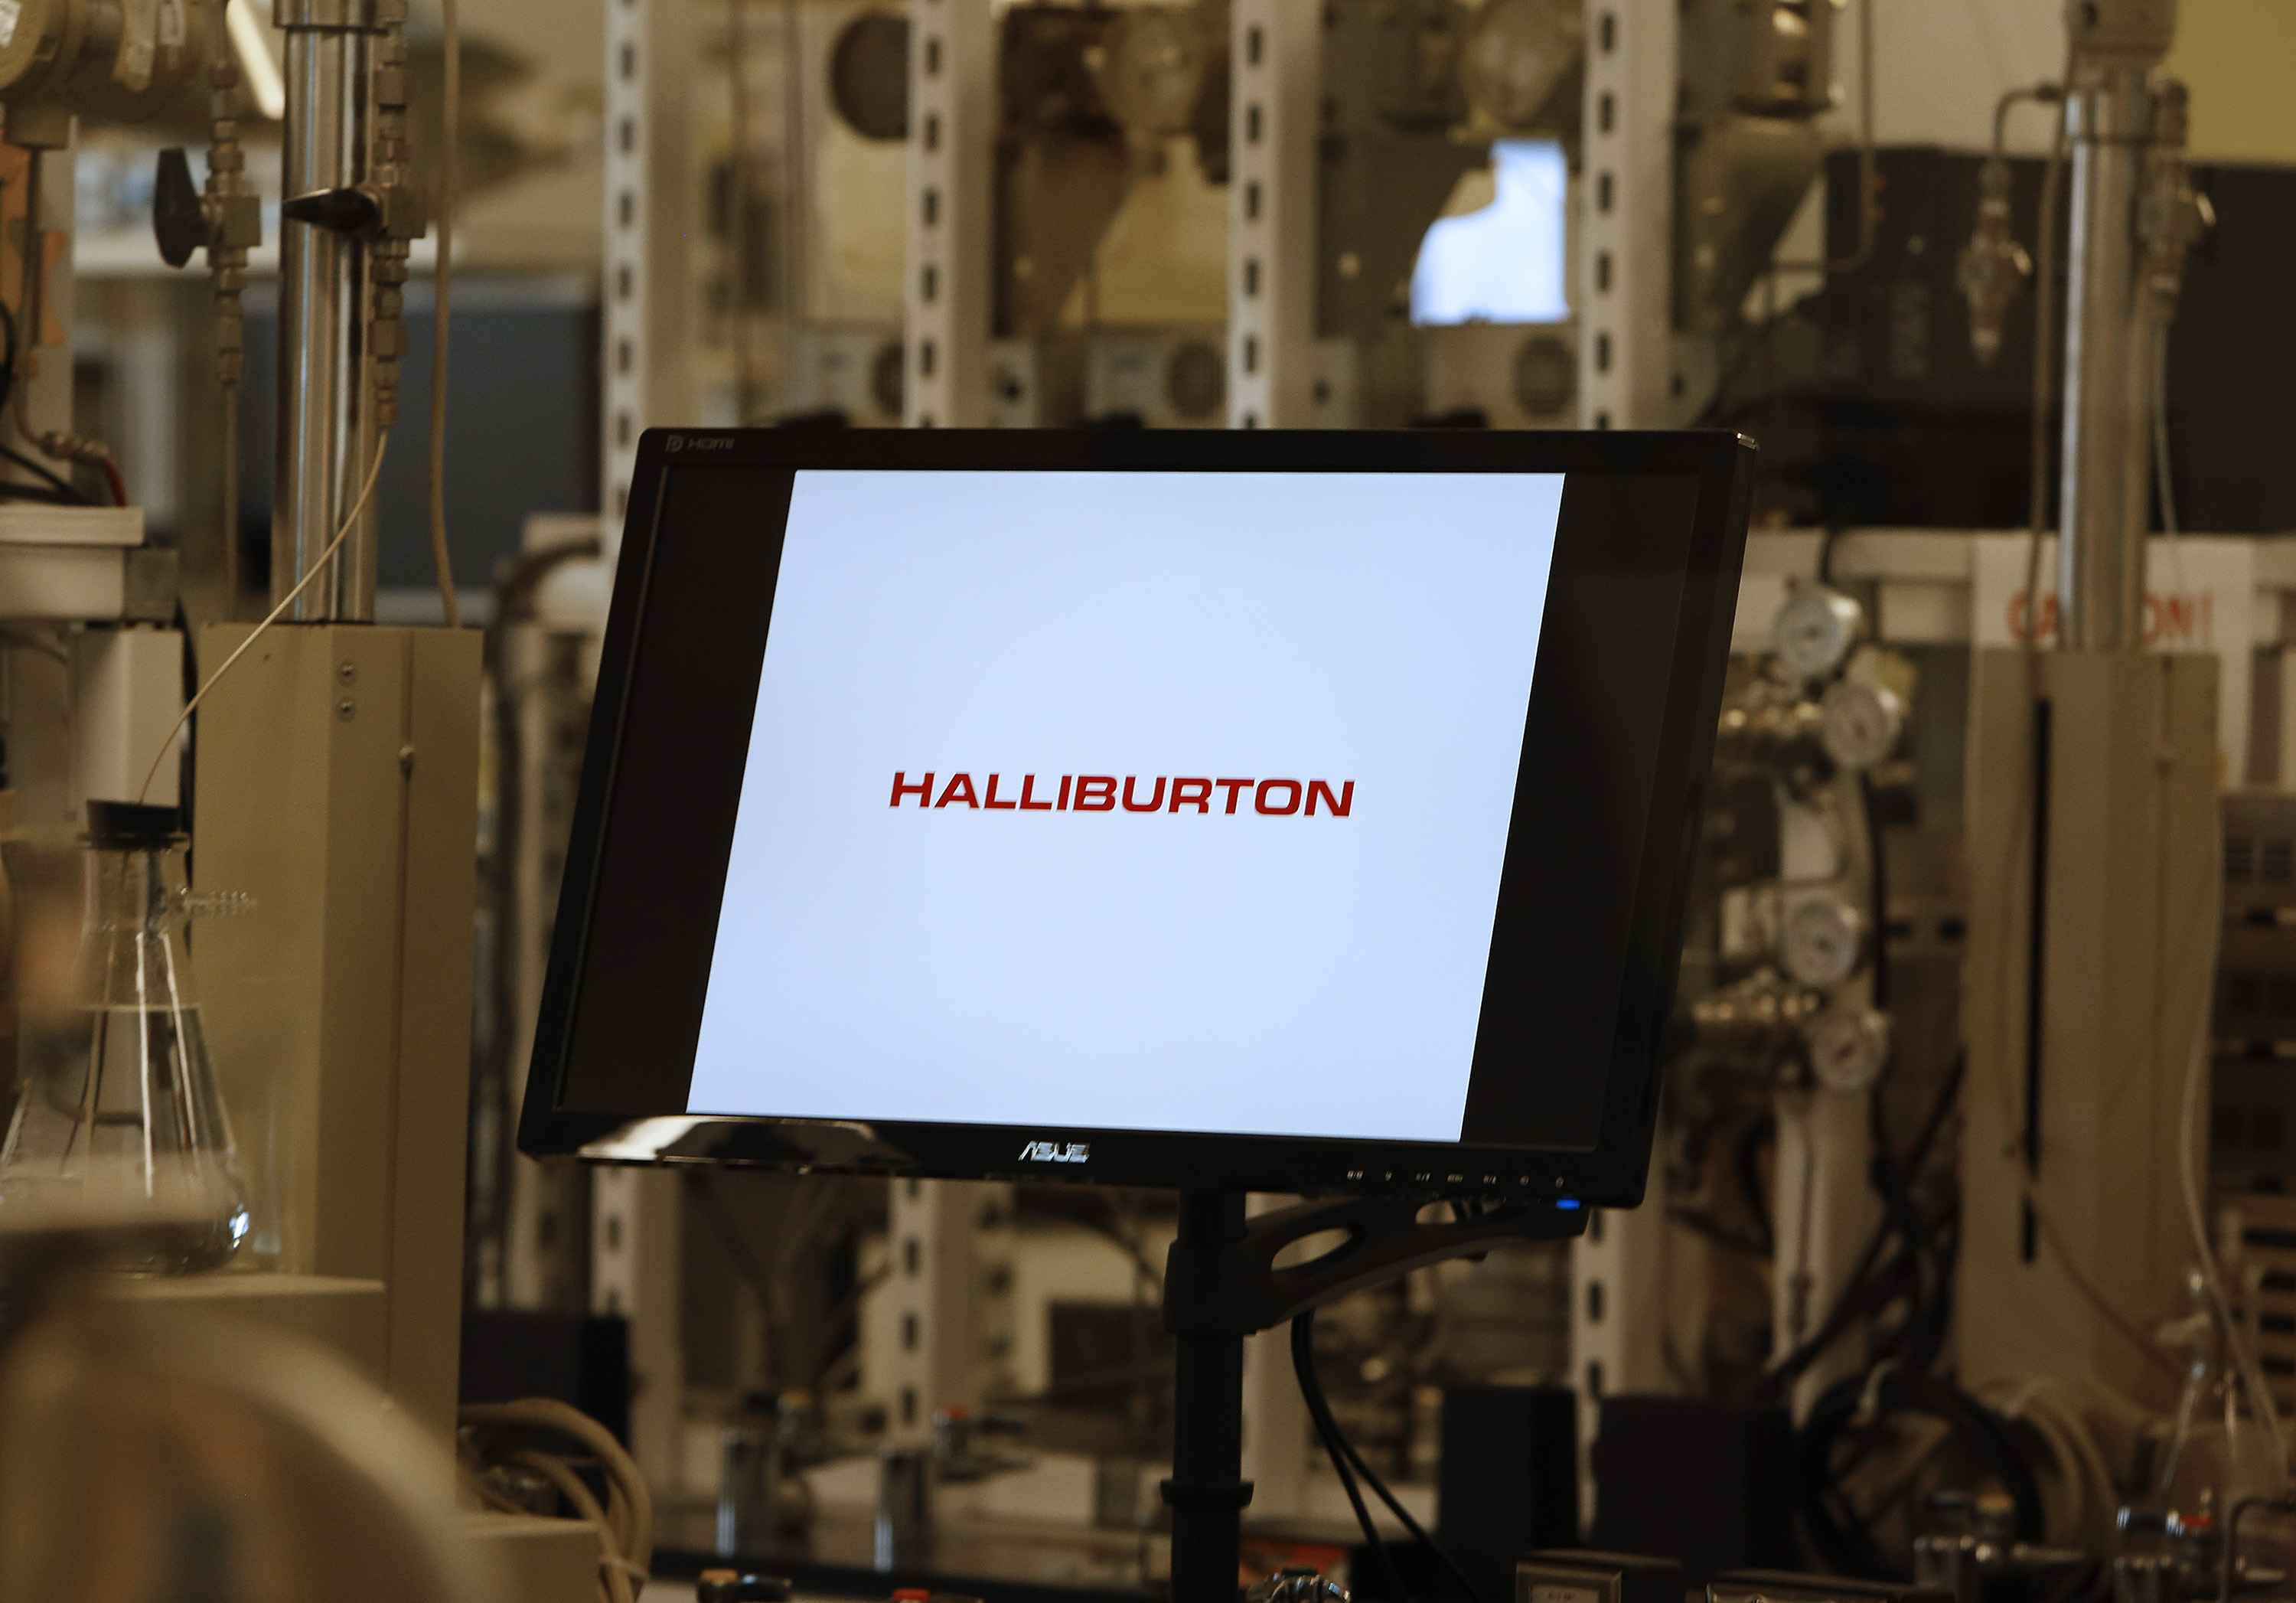 The Halliburton Co. logo is seen on a computer monitor at the company's facility in Houston, Texas, U.S., on Thursday, May 9, 2013. Halliburton Co., the world?s largest provider of hydraulic-fracturing services, reported last month that first-quarter results beat analysts? estimates as the company reduced costs in North America. Photographer: Aaron M. Sprecher/Bloomberg via Getty Images